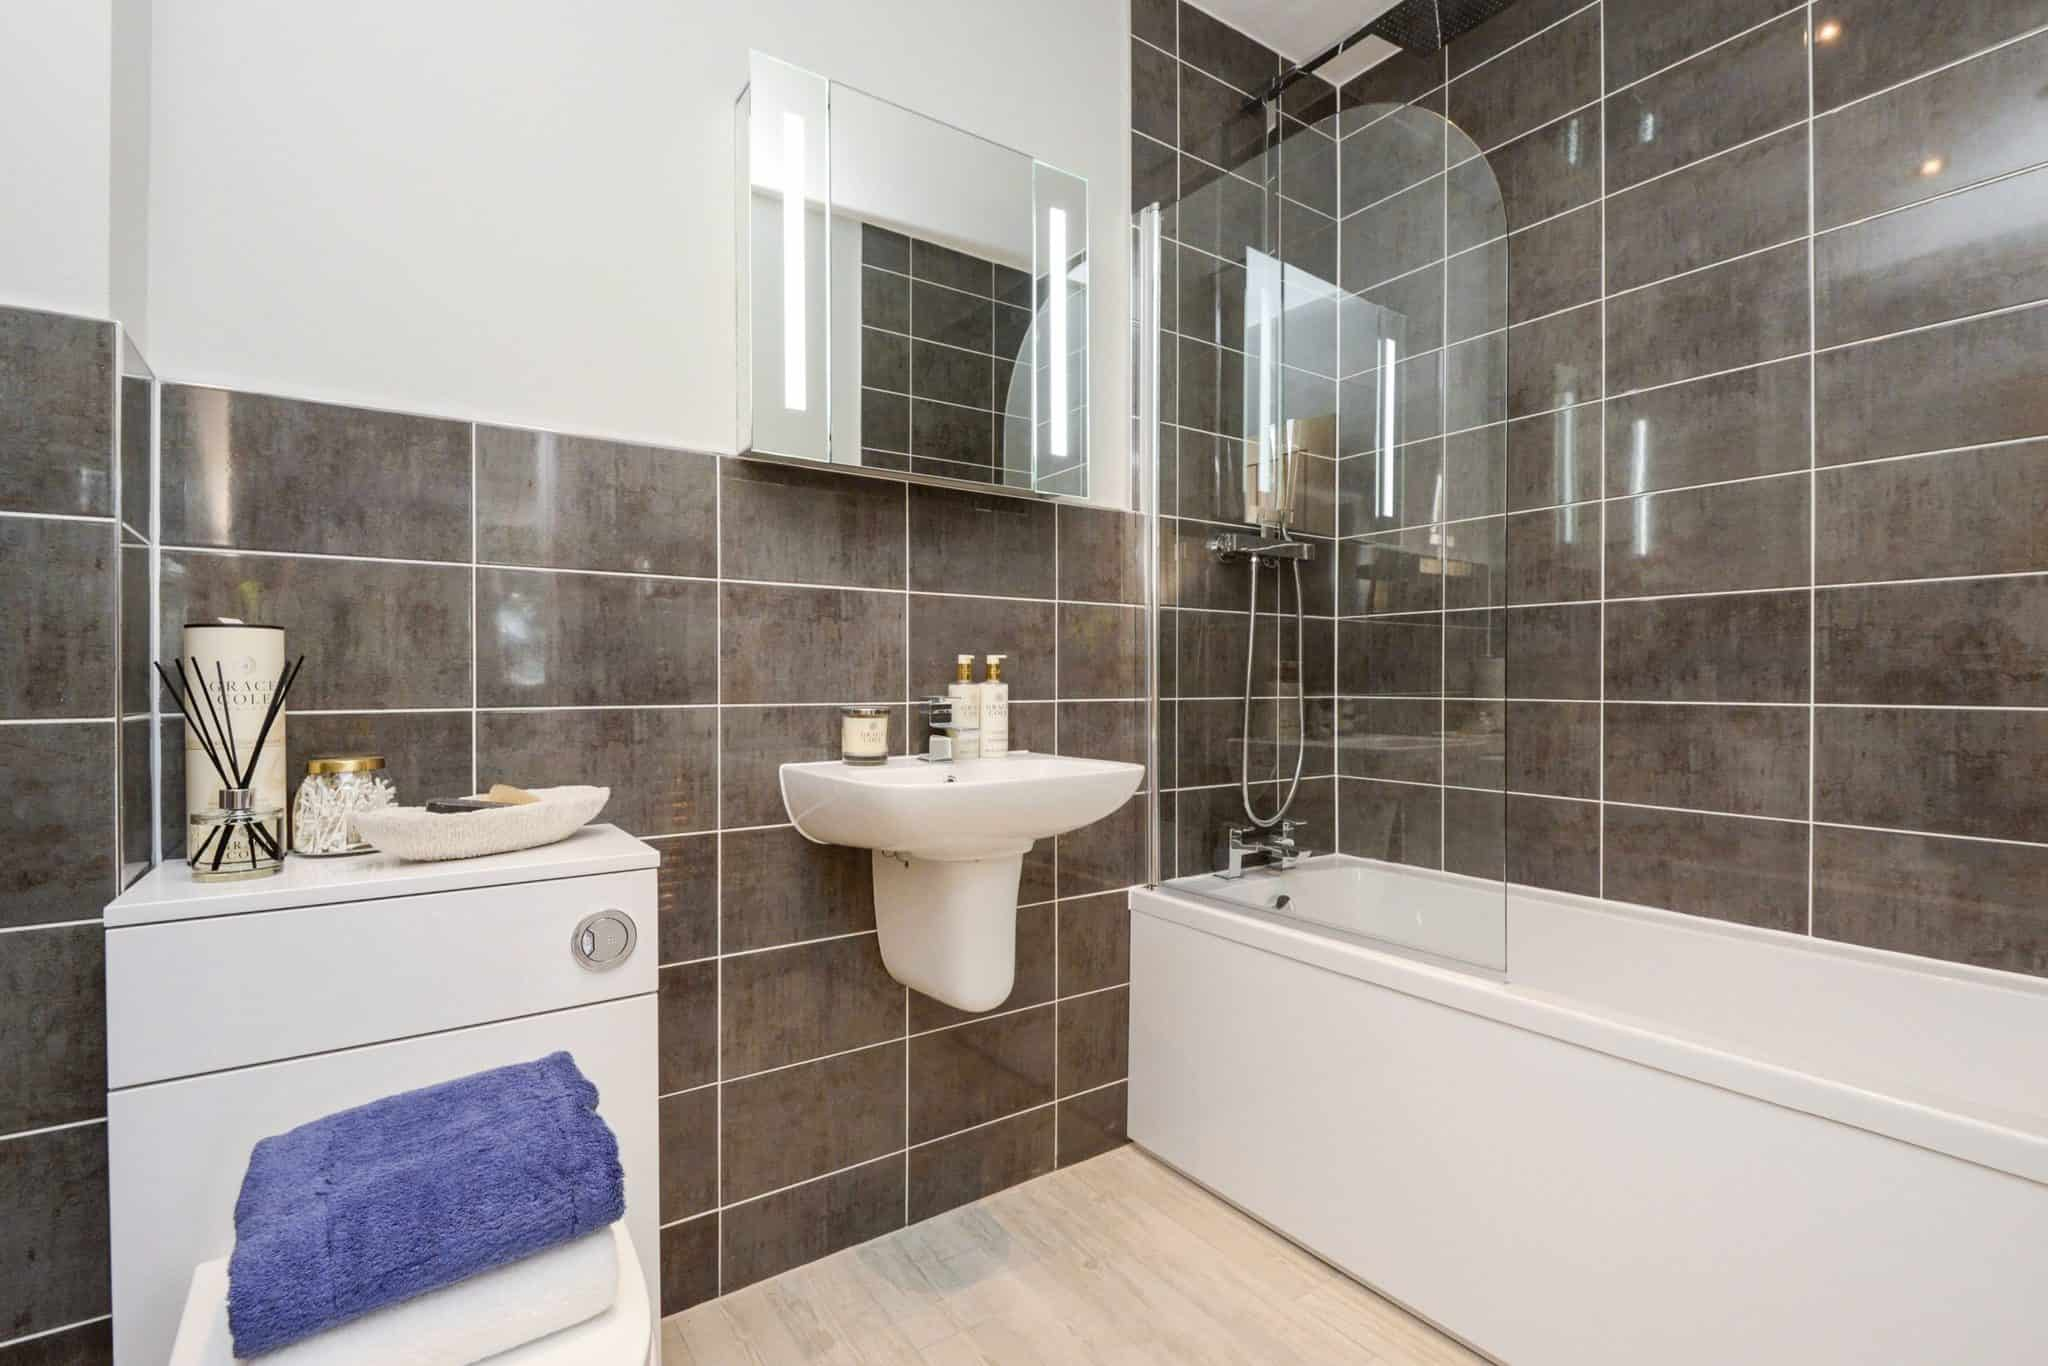 Bathroom Interior Commercial to Residential Property Conversion Apartment